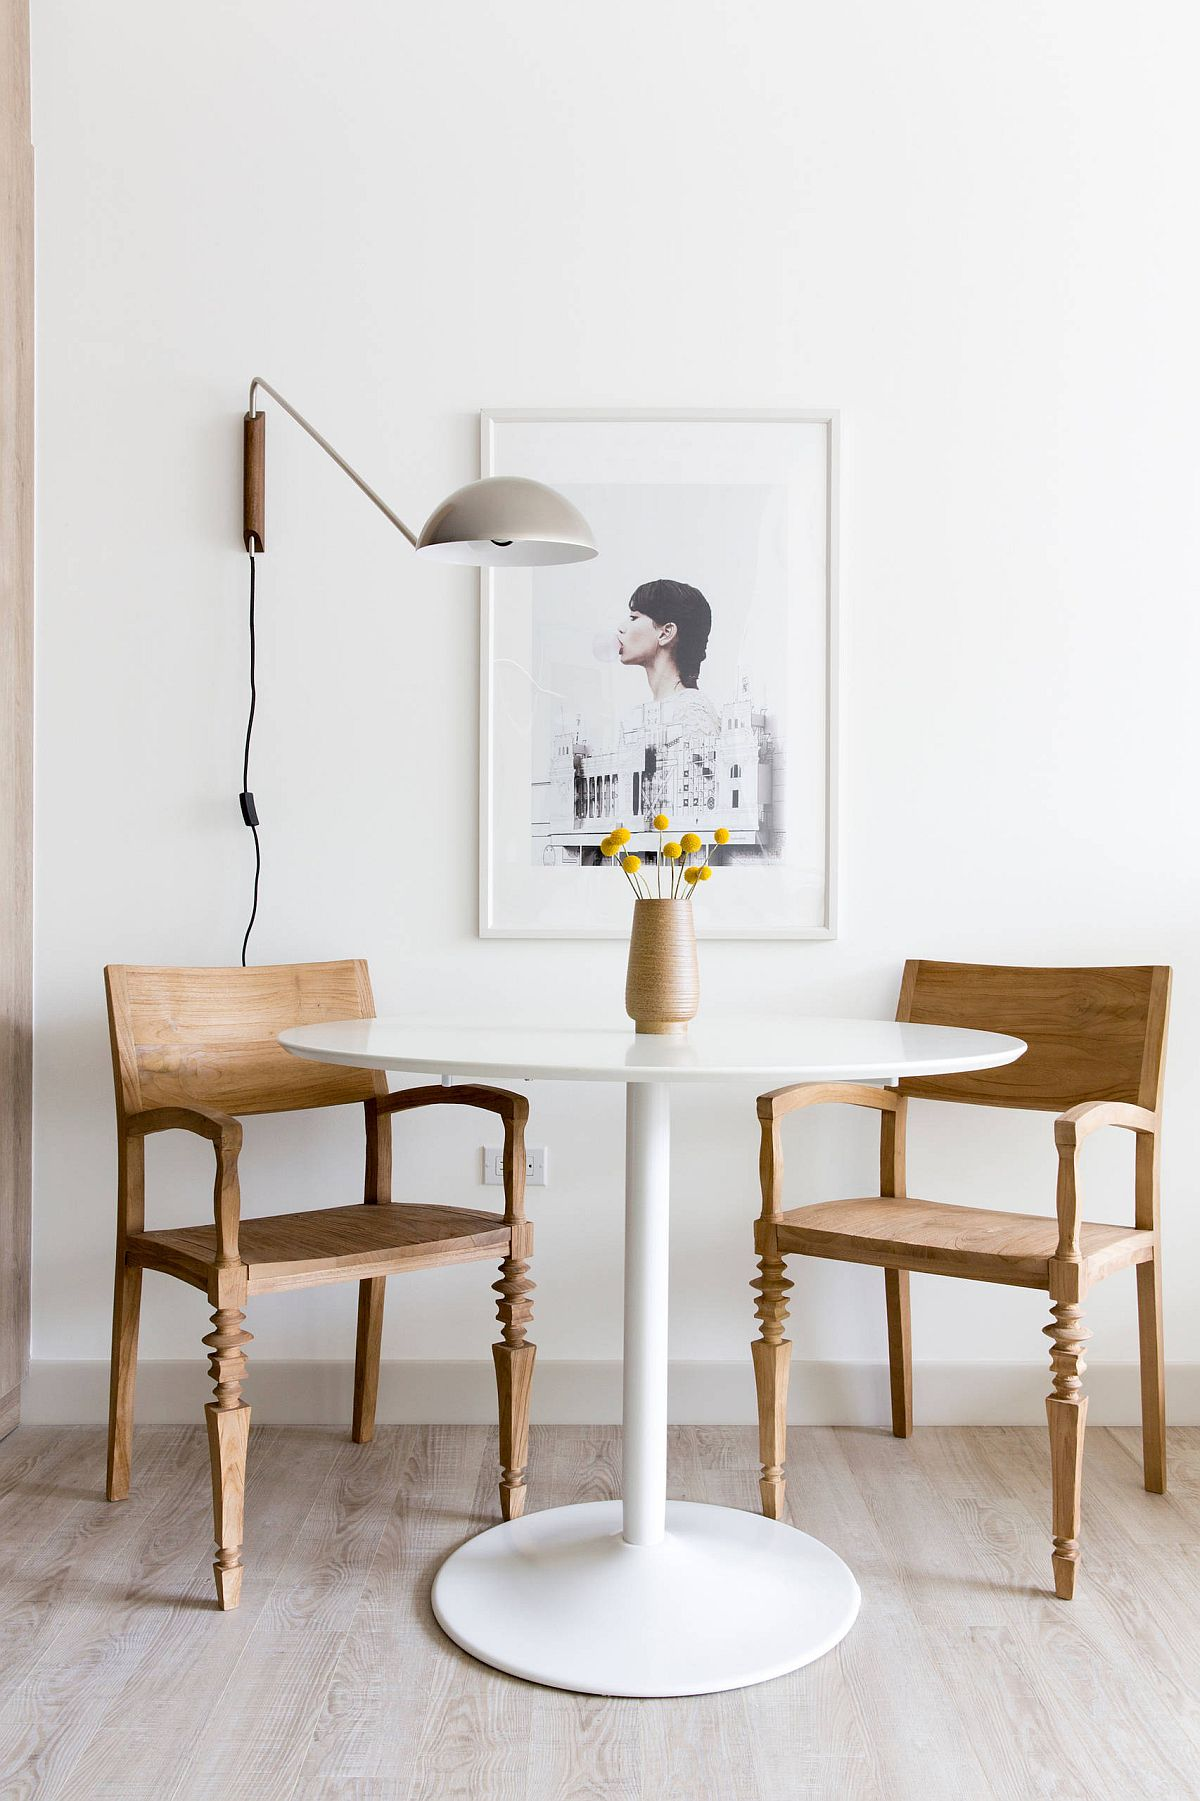 Minimal-Scandinavian-style-dining-room-with-two-chairs-and-sconce-lighting-51980